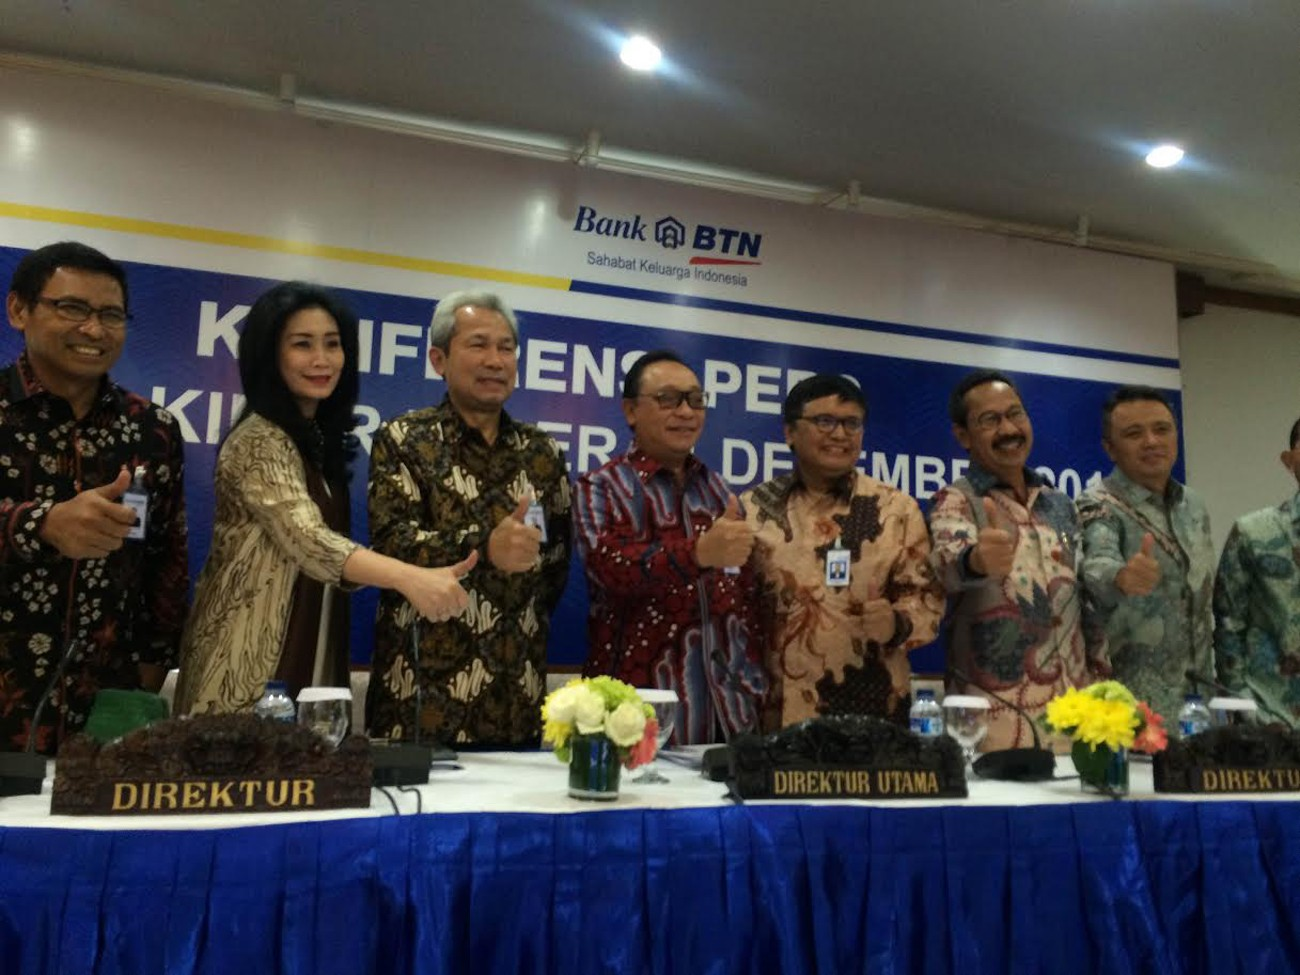 Business won't be affected by OJK's sanction: BTN